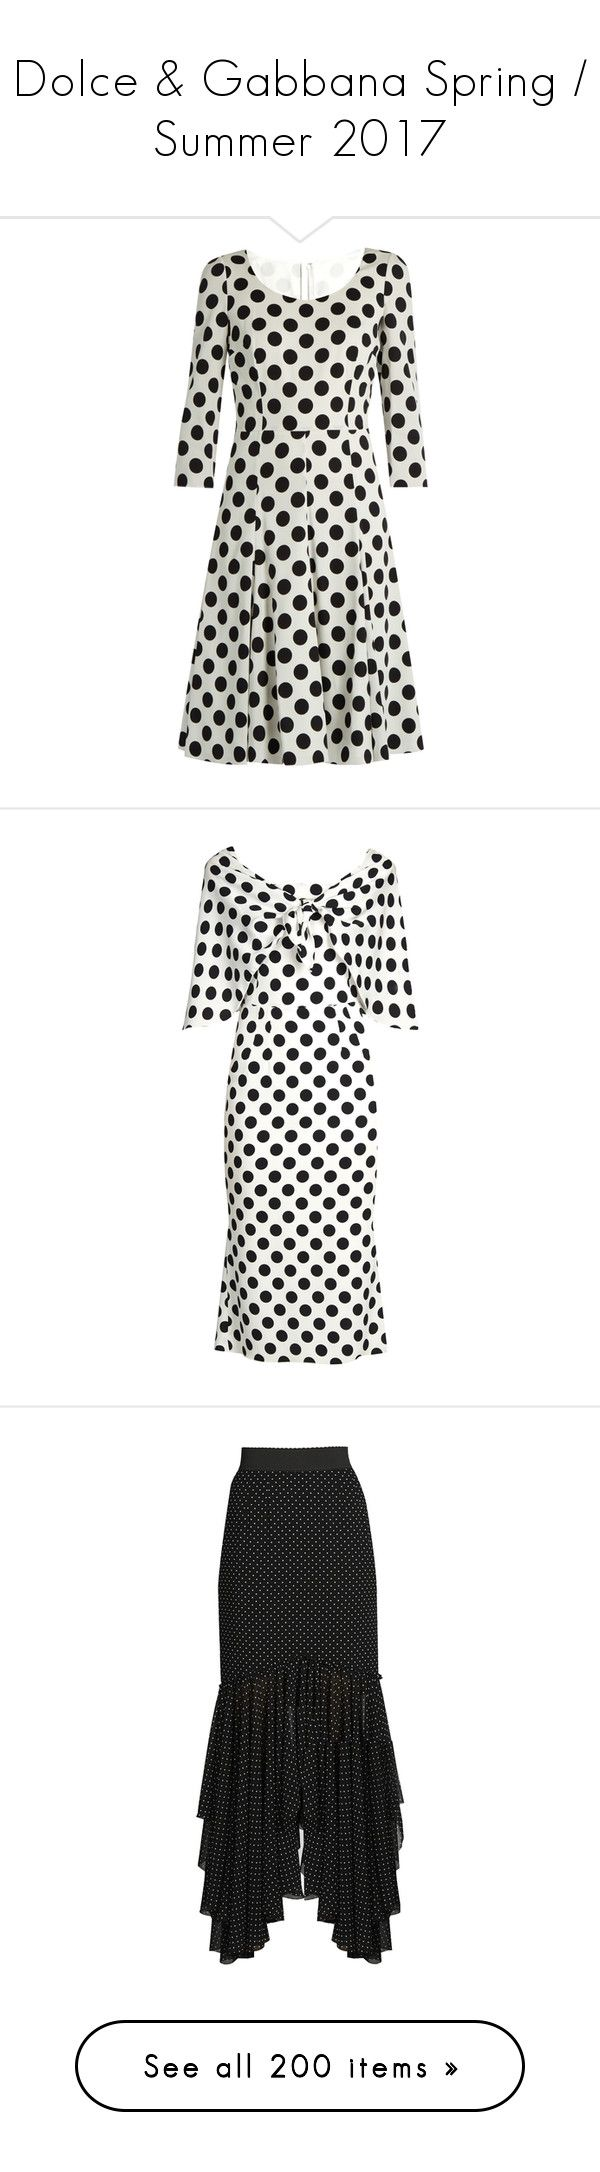 """""""Dolce & Gabbana Spring / Summer 2017"""" by rizqia97 ❤ liked on Polyvore featuring dresses, white multi, polka dot cocktail dress, knee length evening dresses, white flare dress, cocktail dresses, knee length cocktail dresses, retro white dress, white dress and print dresses"""